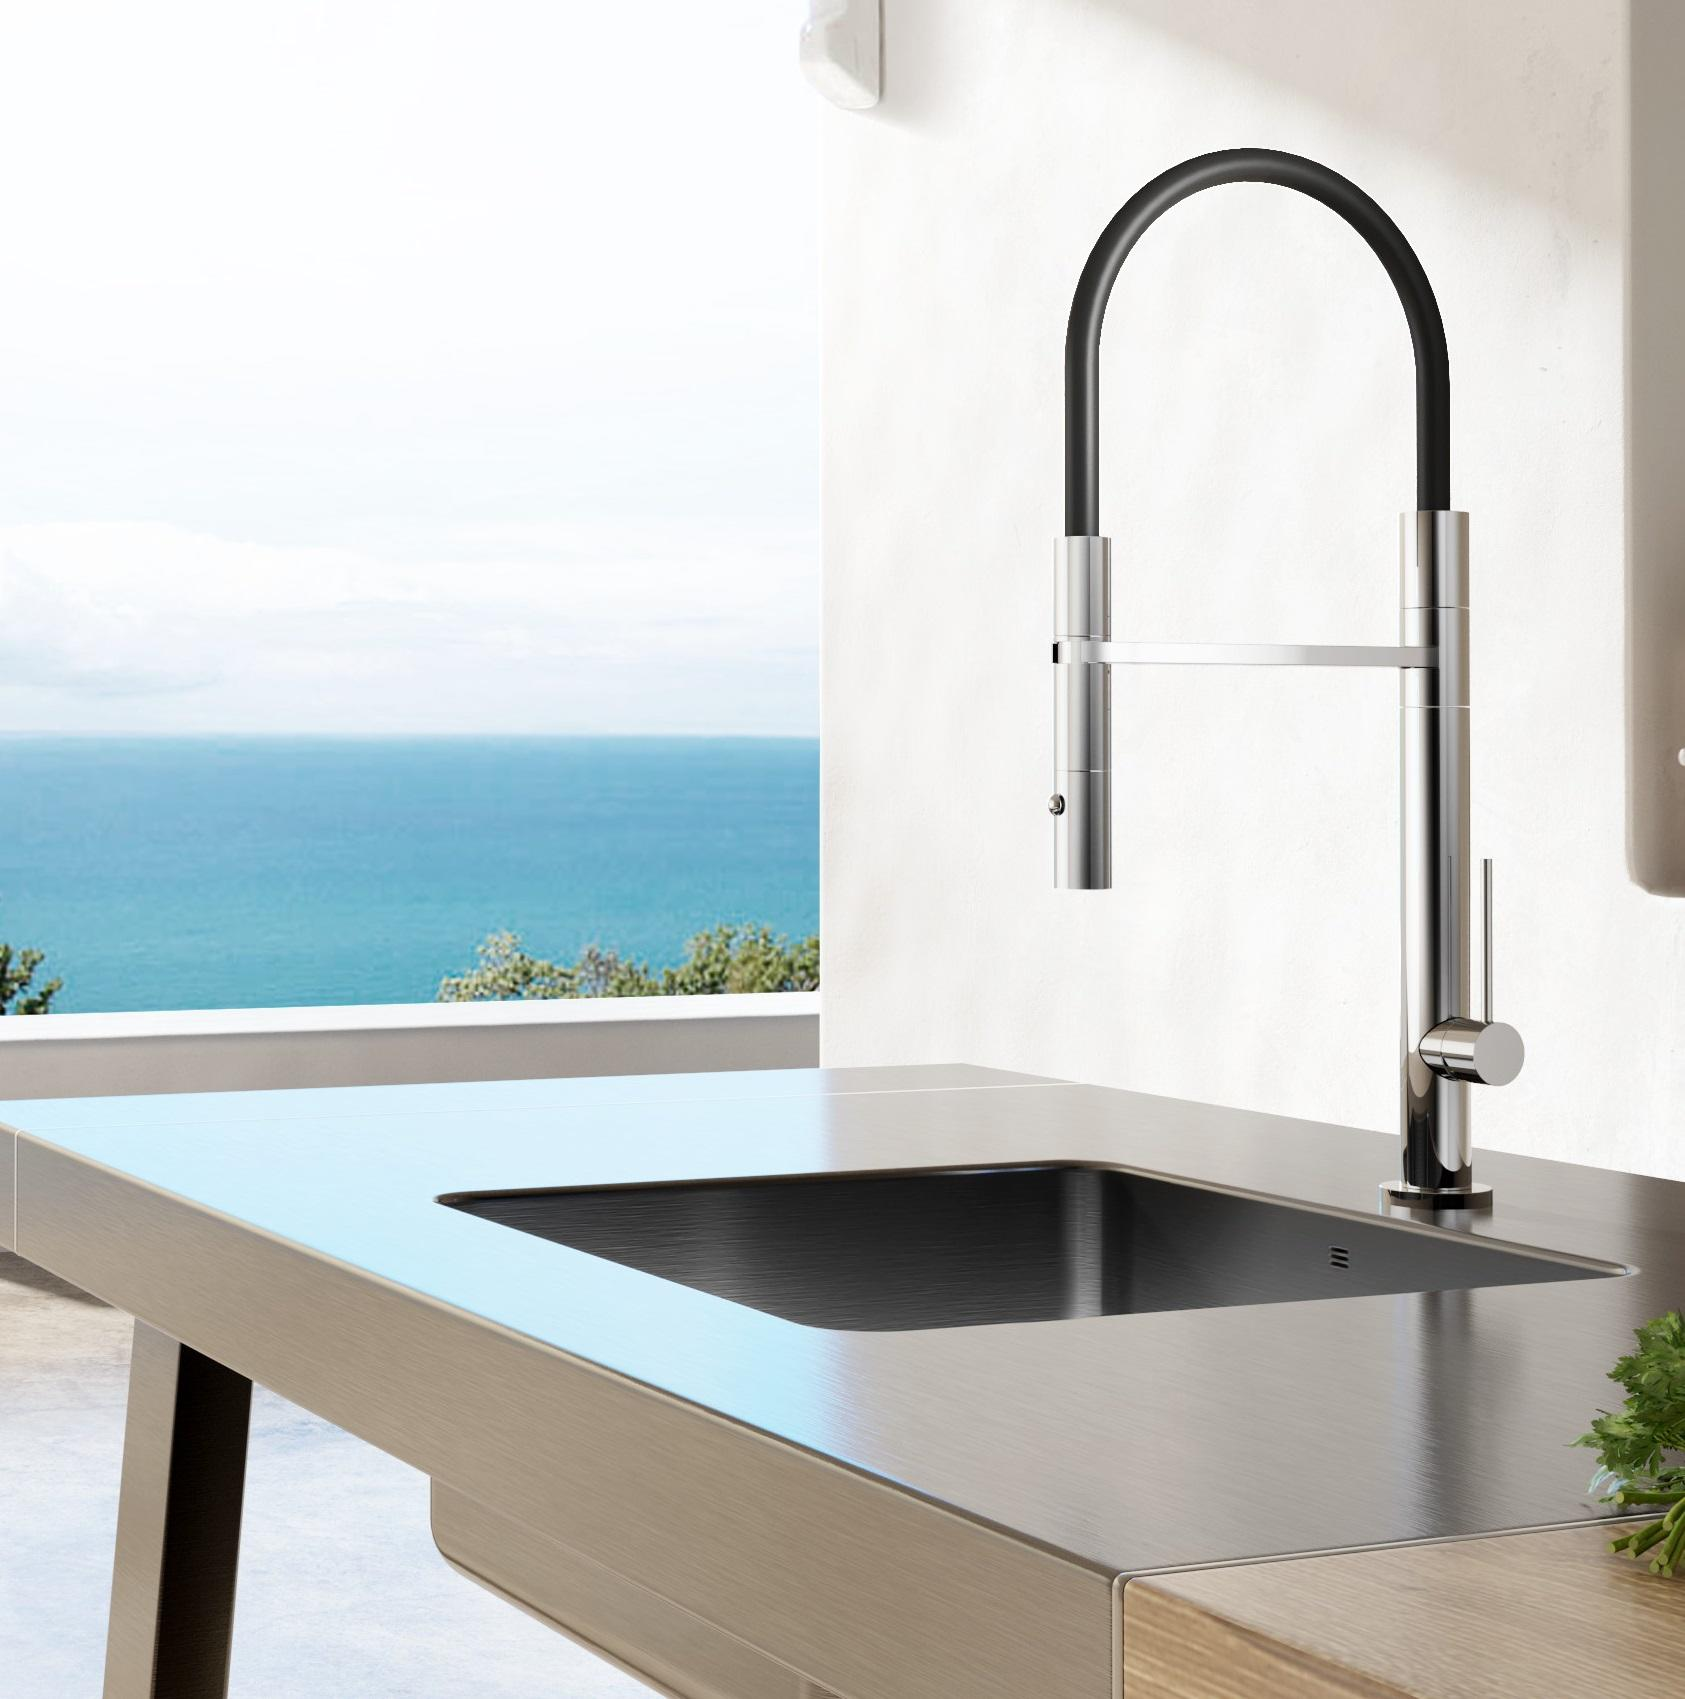 stainless_steel_316_marine_grade_basin_tap_bathroom_kitchen_sink_modern_compact